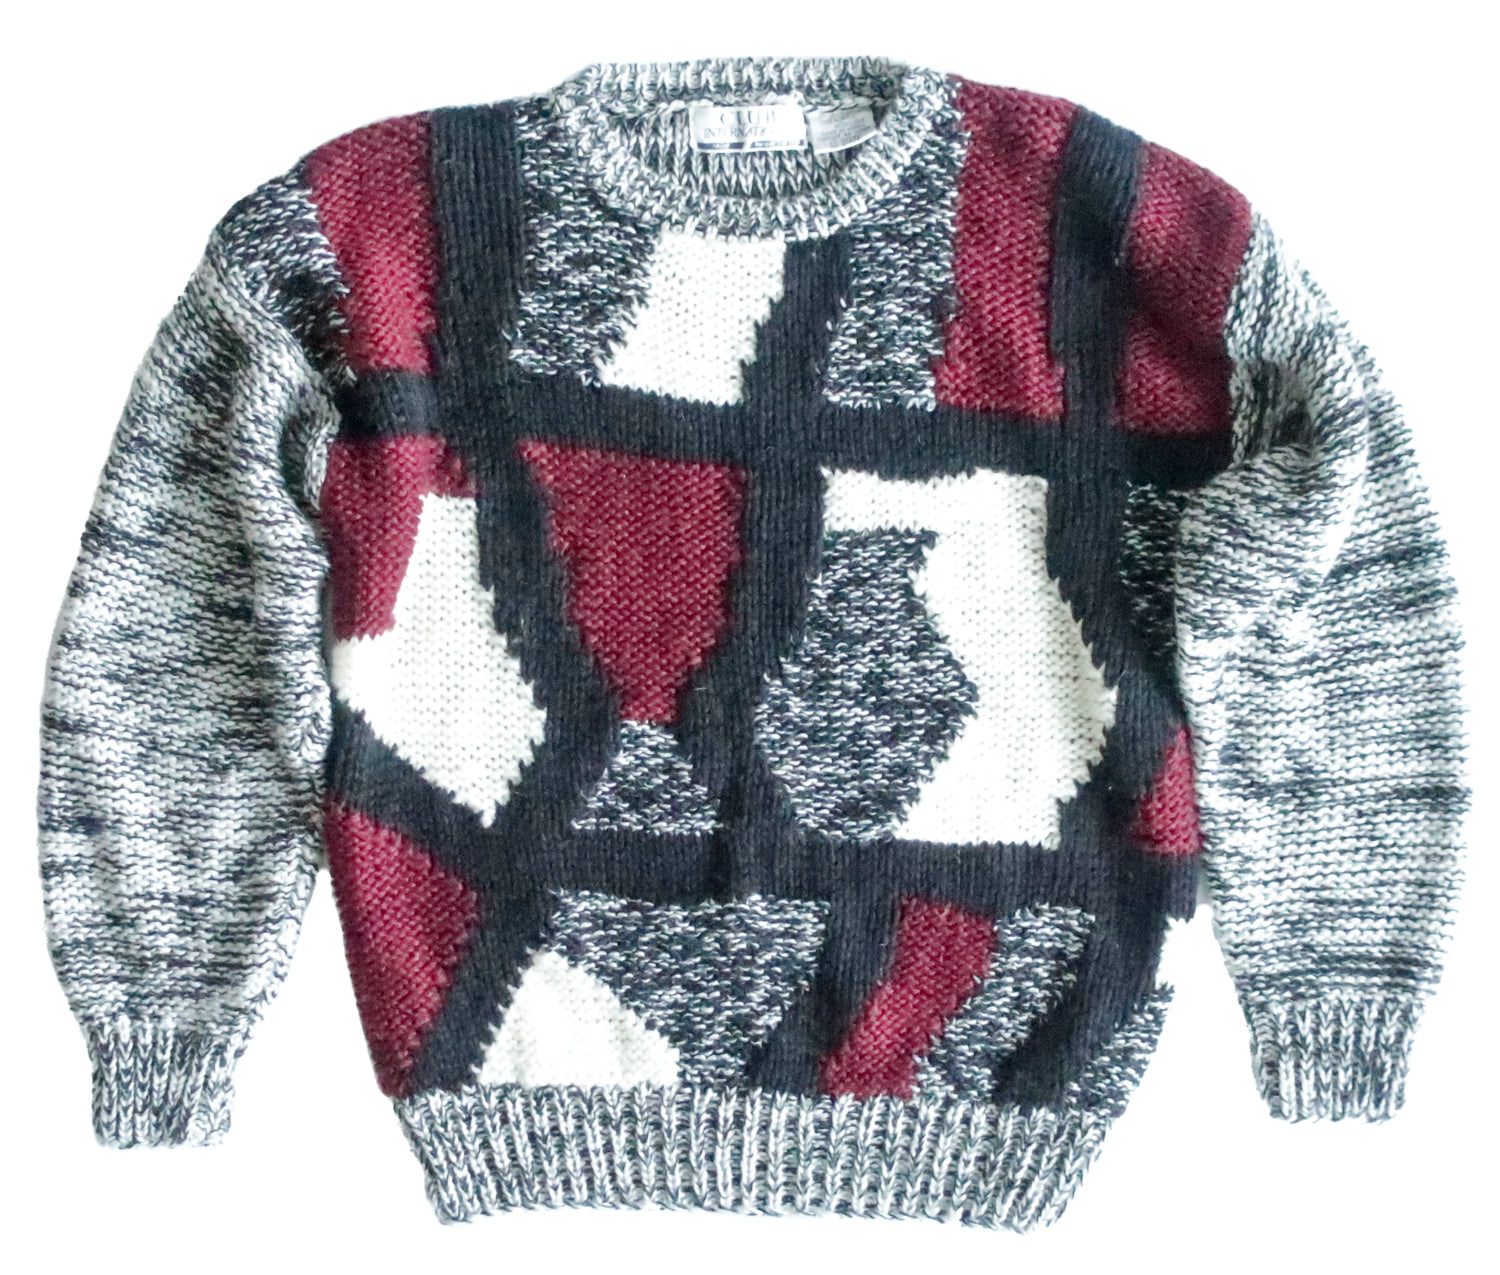 Second Room Vintage Clothing. Vintage crewneck sweater with abstract black, white, grey and burgundy pattern on the front, back and sleeves are plain grey. Free North American shipping on all orders.